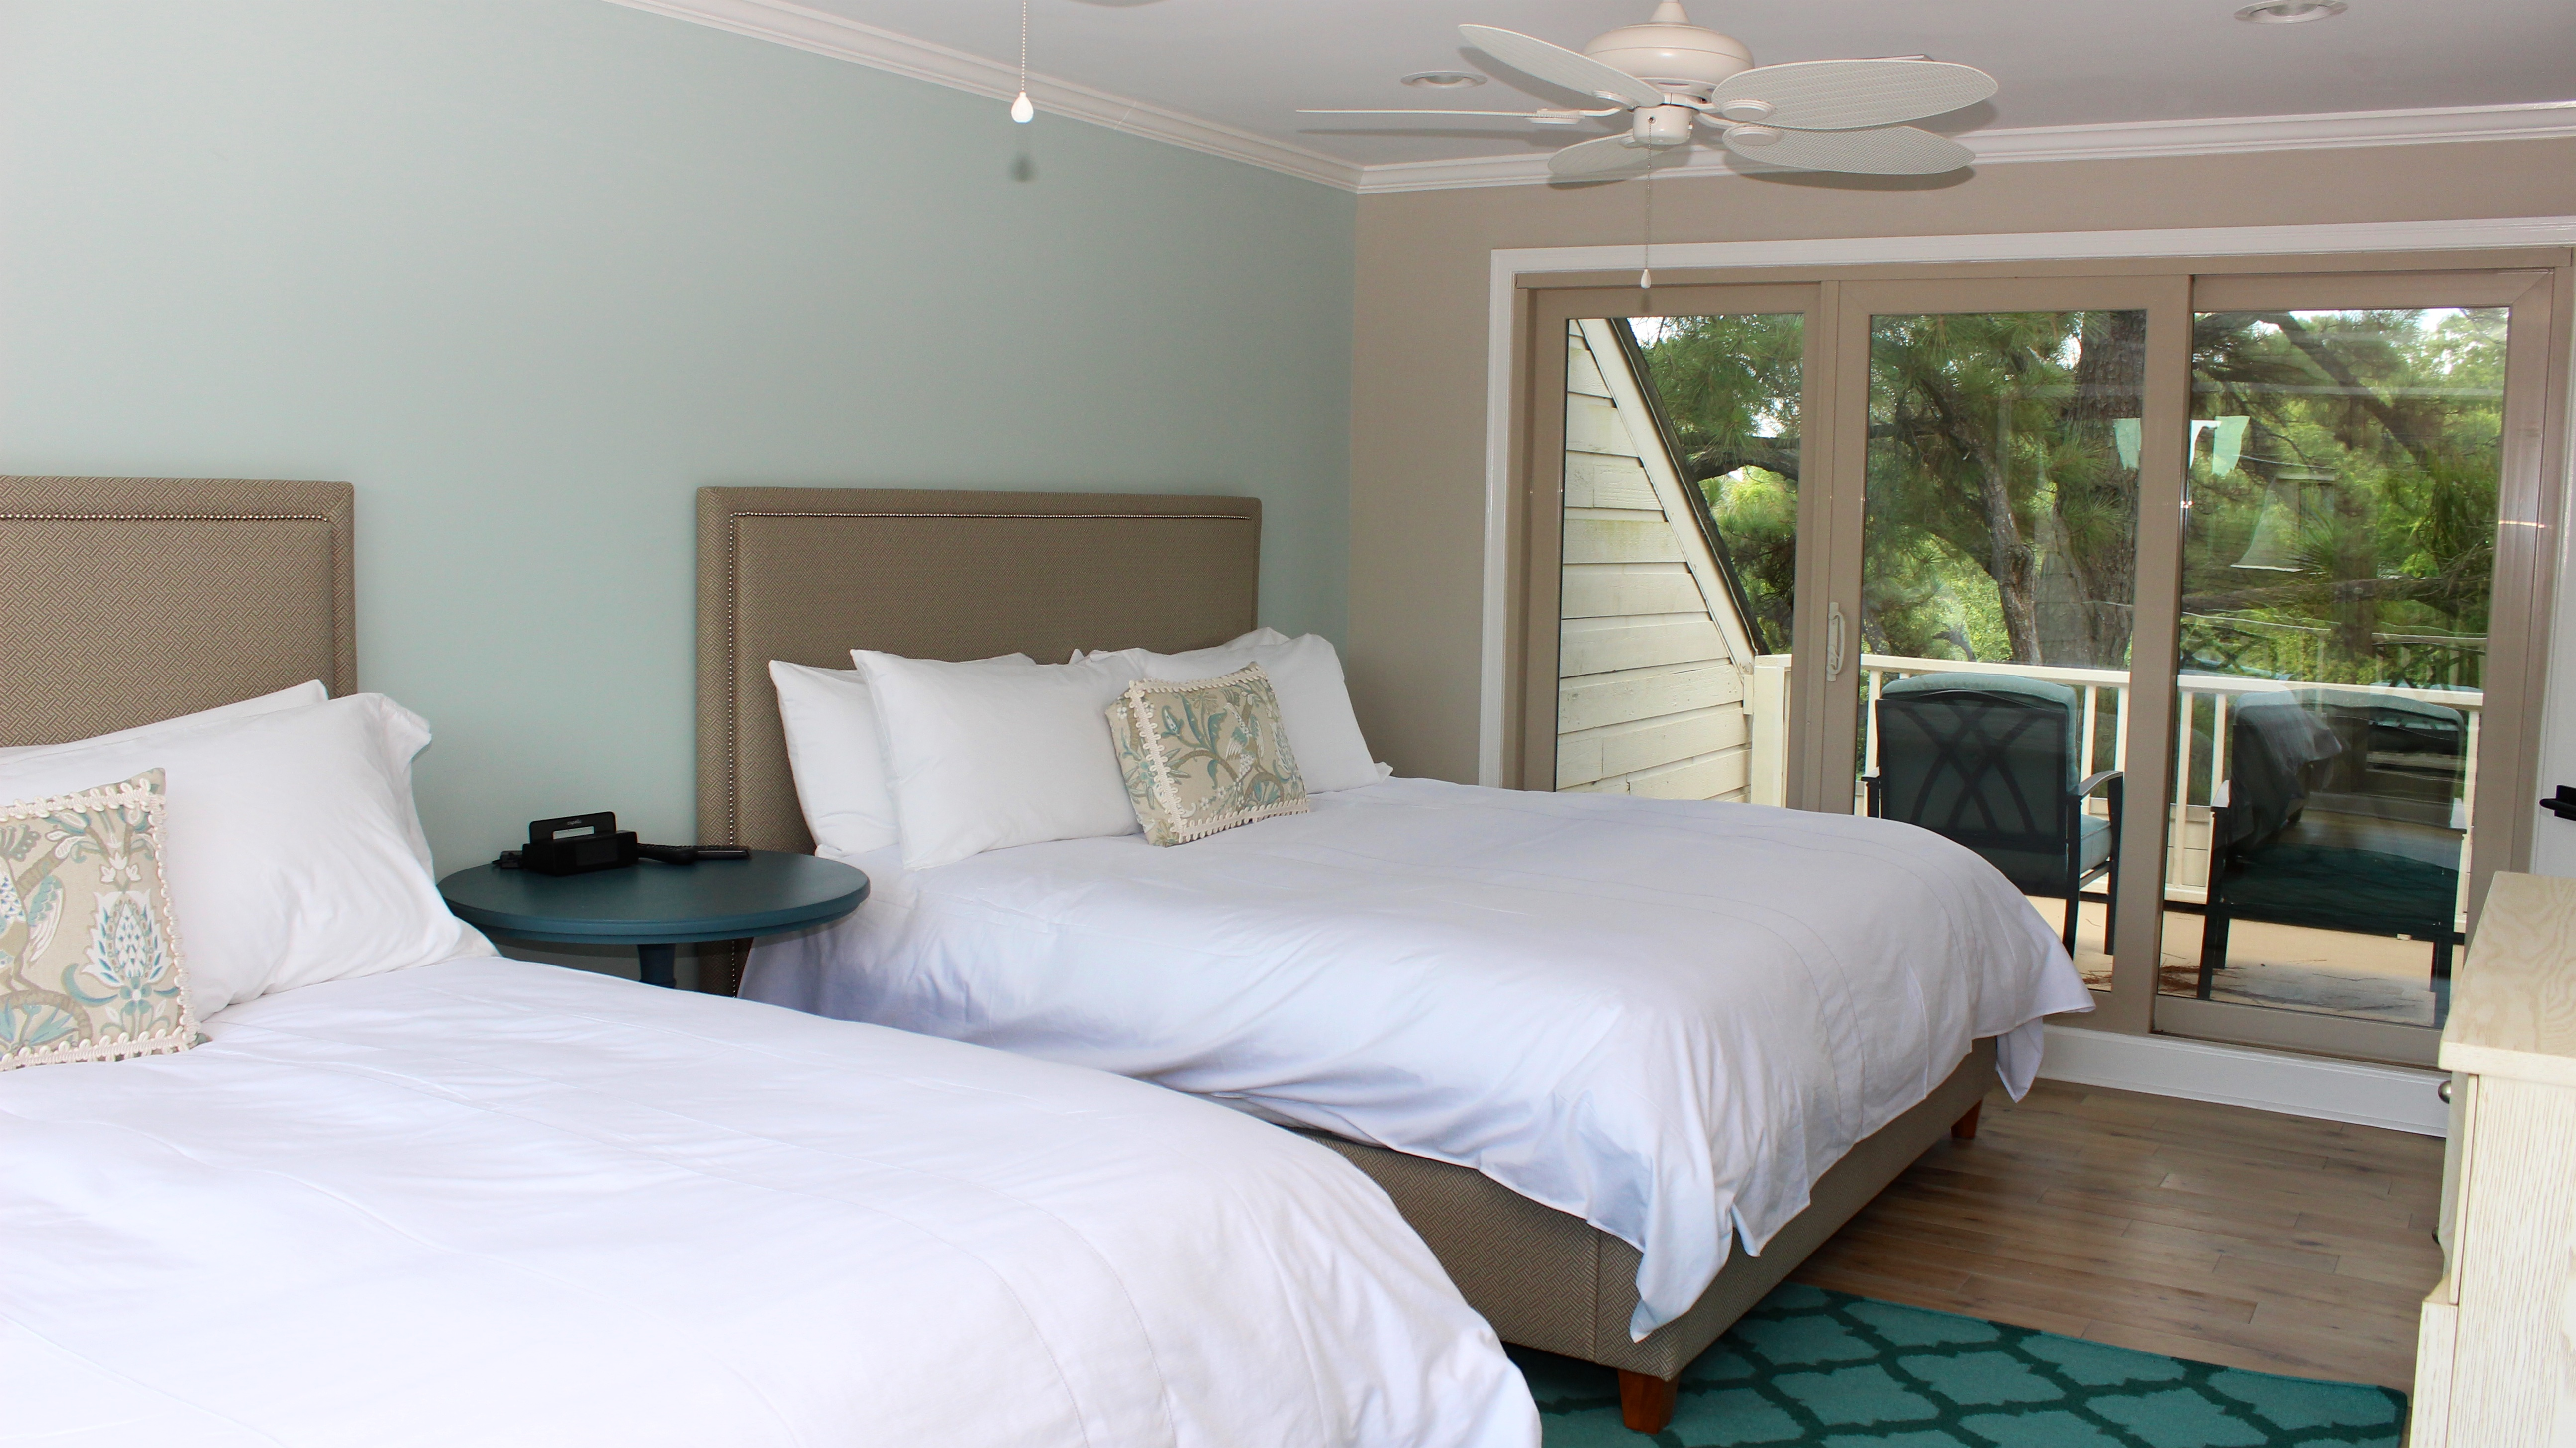 Step to one of the two sun decks to relax on the comfortable furnishings.